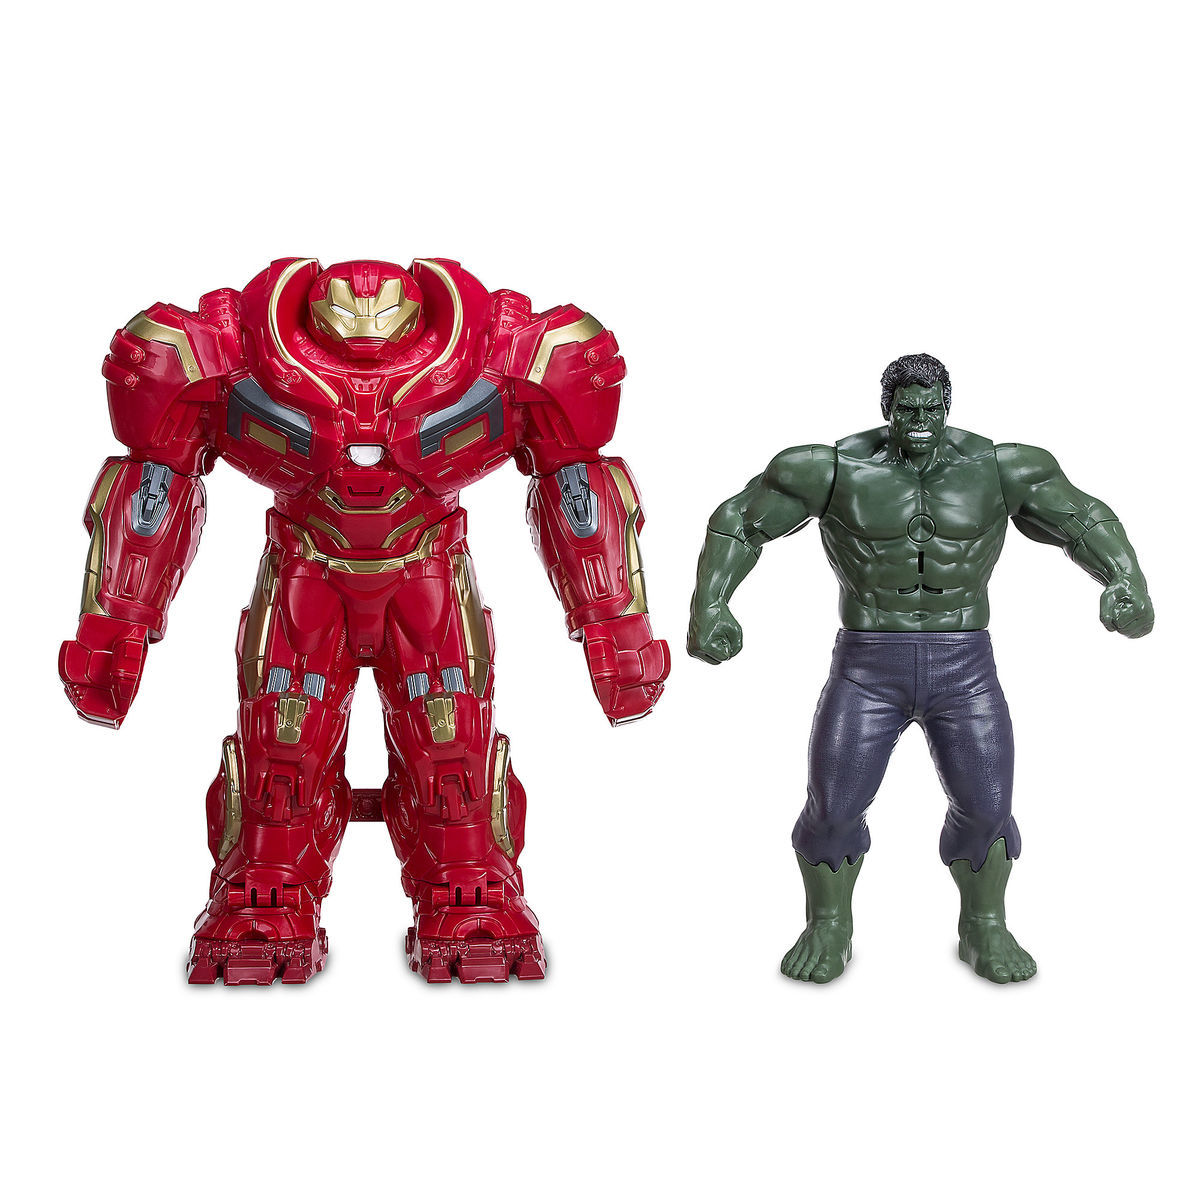 Product Image of Hulk Out Hulkbuster Action Figure by Hasbro - Marvel's  Avengers: Infinity War